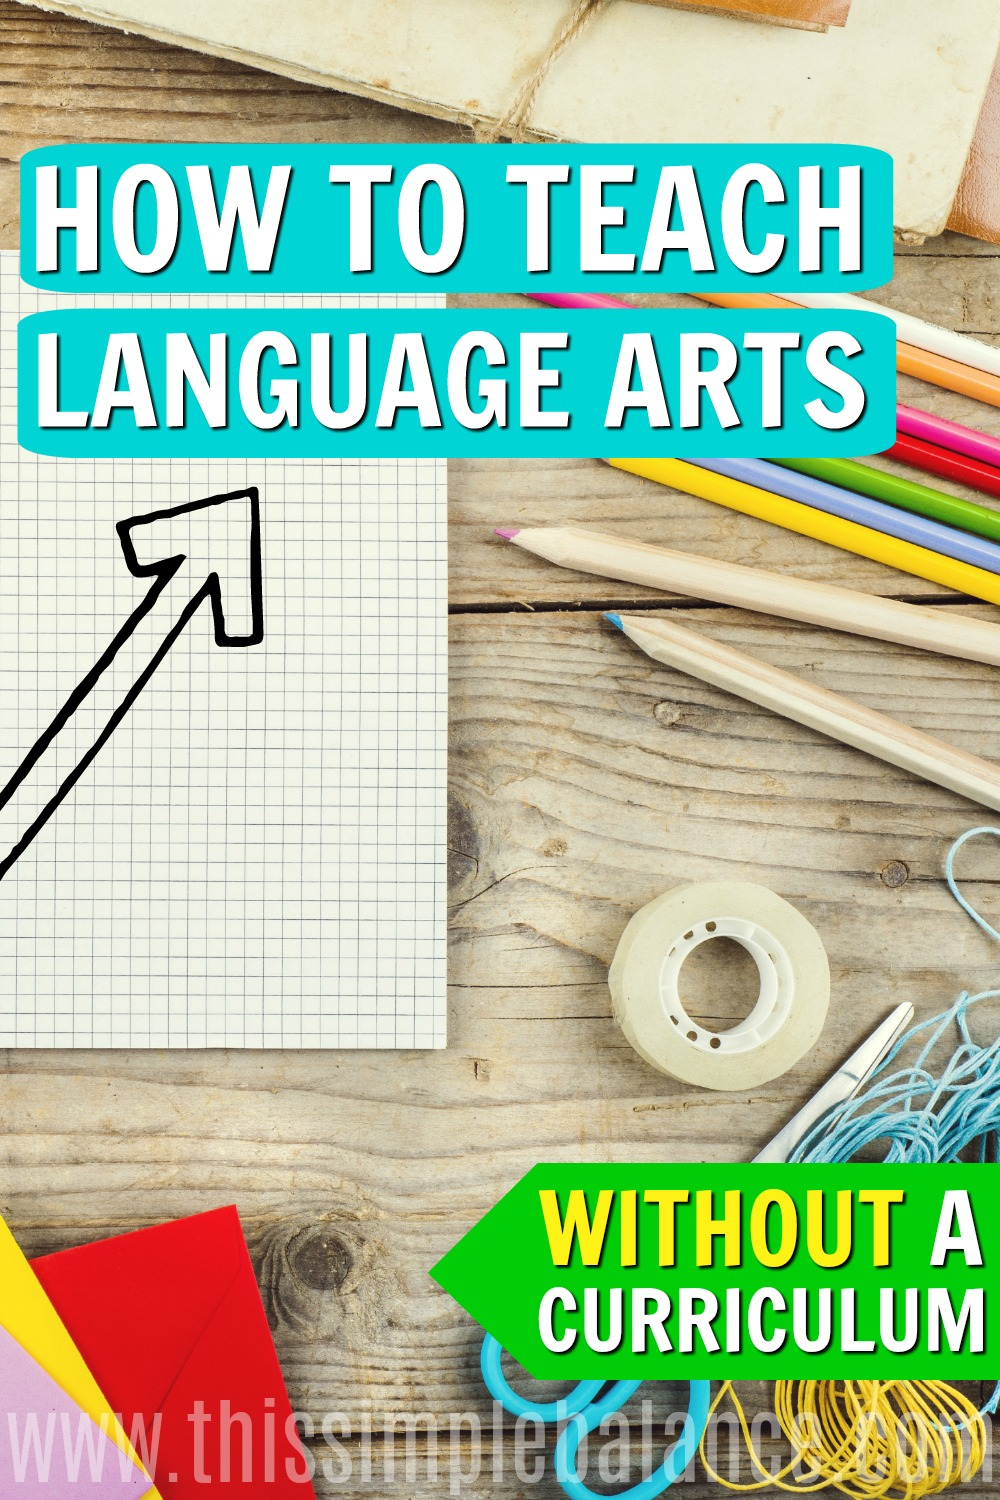 Language Arts homeschooling curriculum can be really dry and boring, when it doesn't have to be! Use these 5 activities to teach your elementary students language arts without a curriculum, instead. They just might love language arts (and homeschooling, for that matter)! #relaxedhomeschooling #simplehomeschool